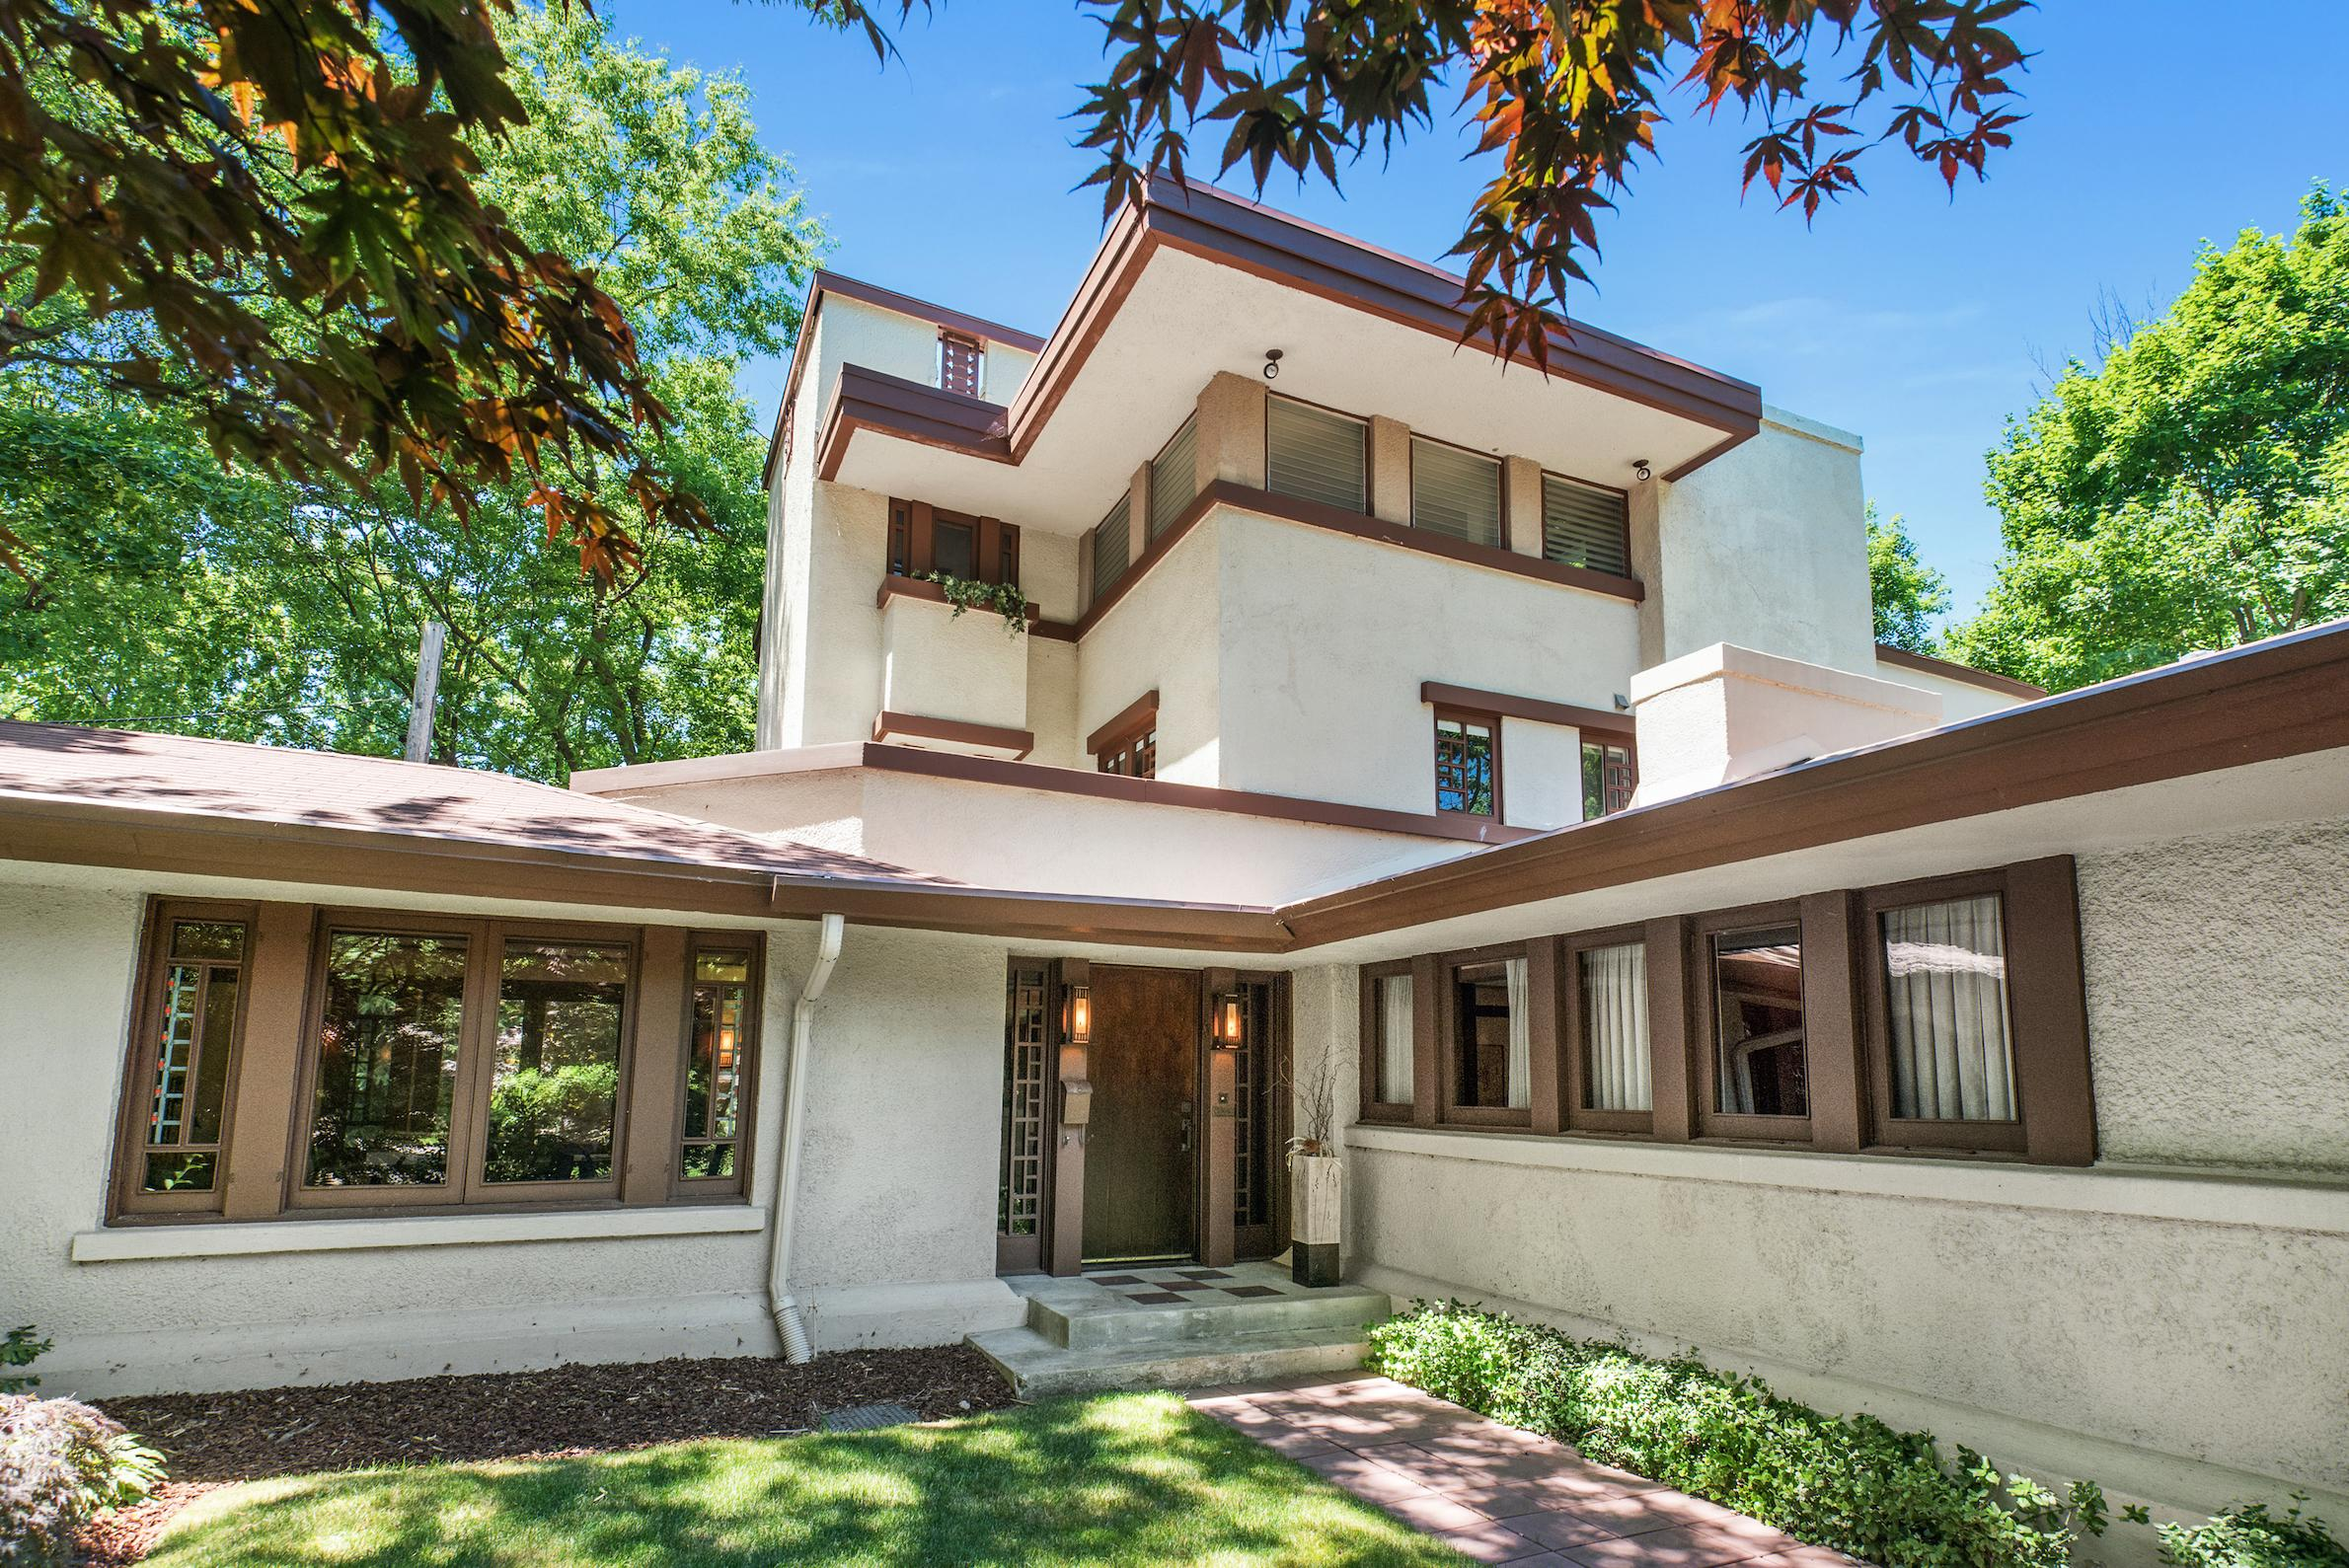 5 frank lloyd wright houses for sale right now for Frank lloyd wright stile prateria